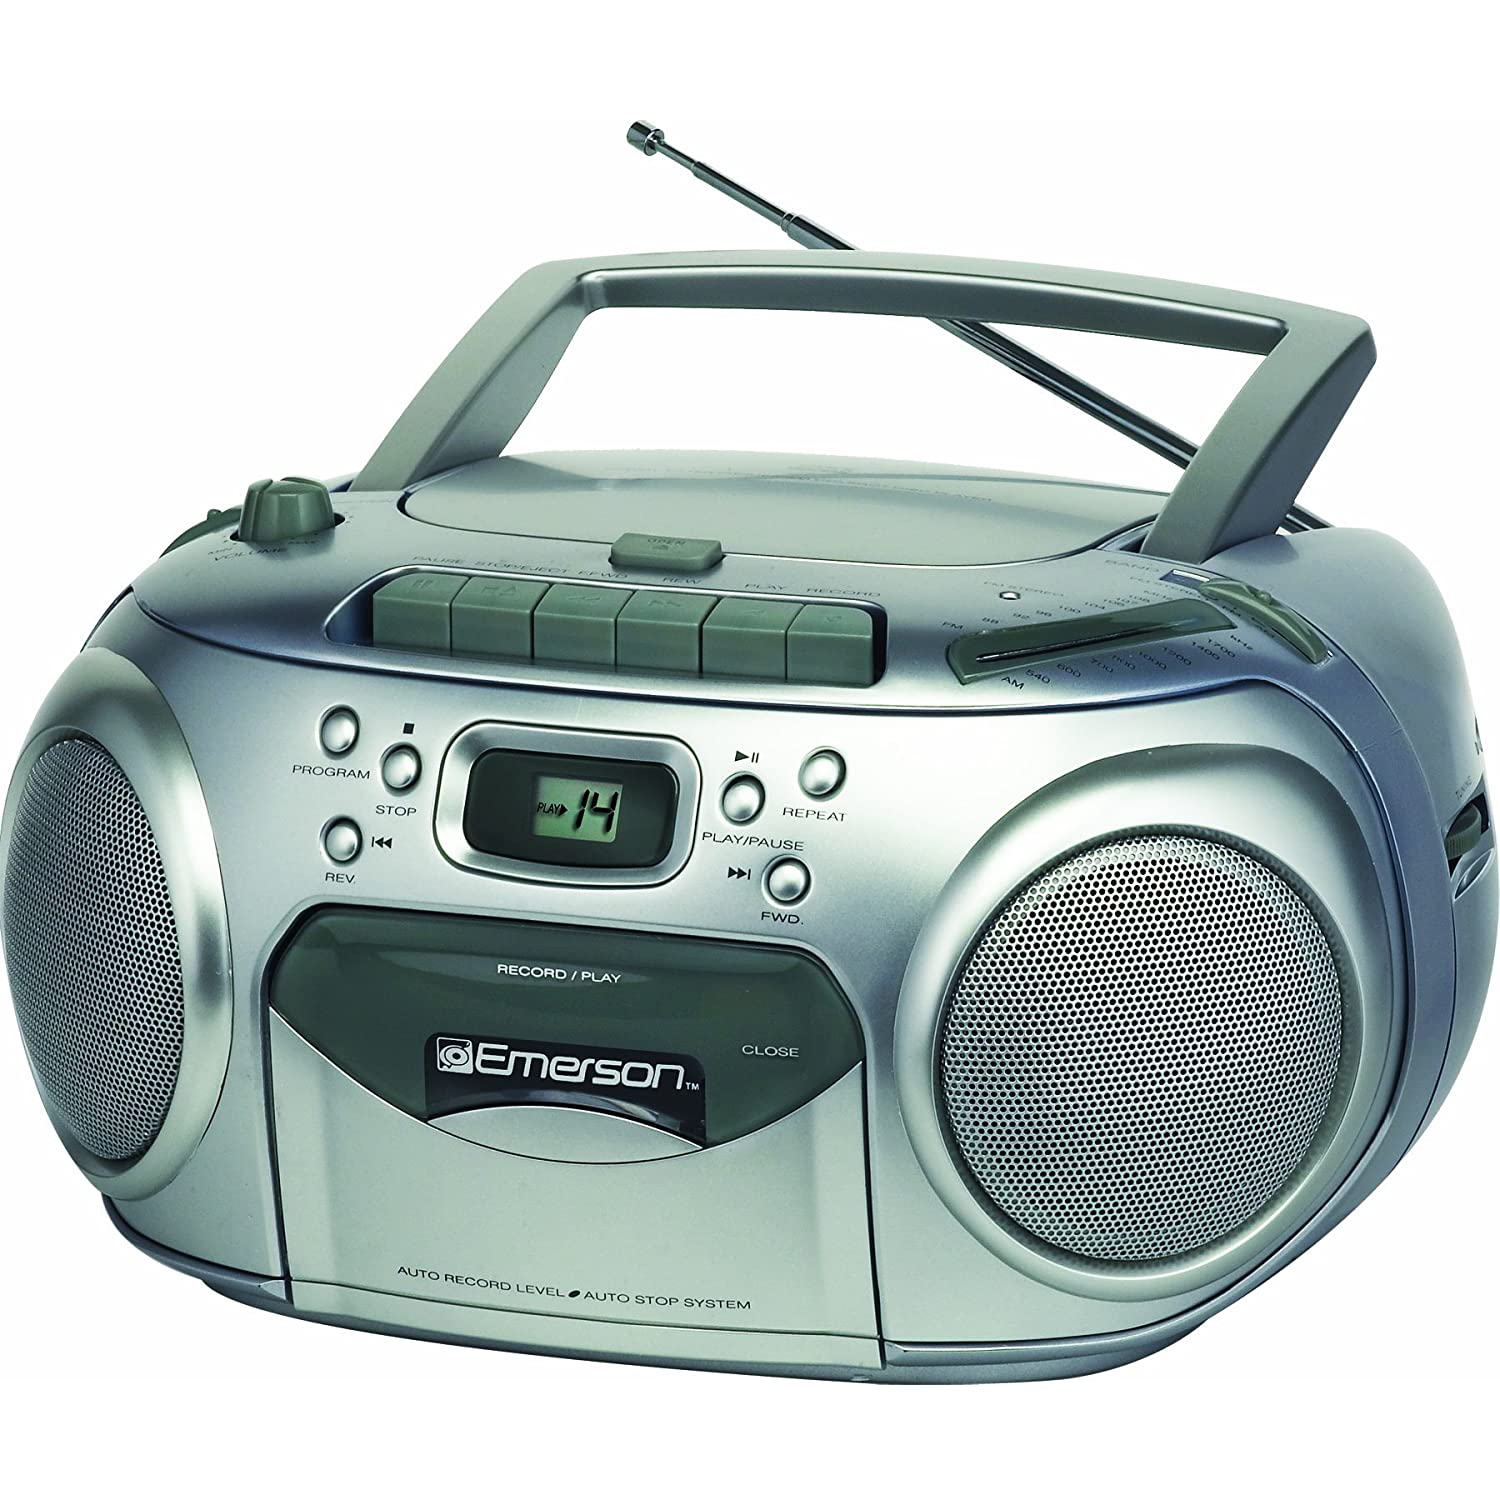 emerson pd6548sl portable radio cd player with cassette. Black Bedroom Furniture Sets. Home Design Ideas